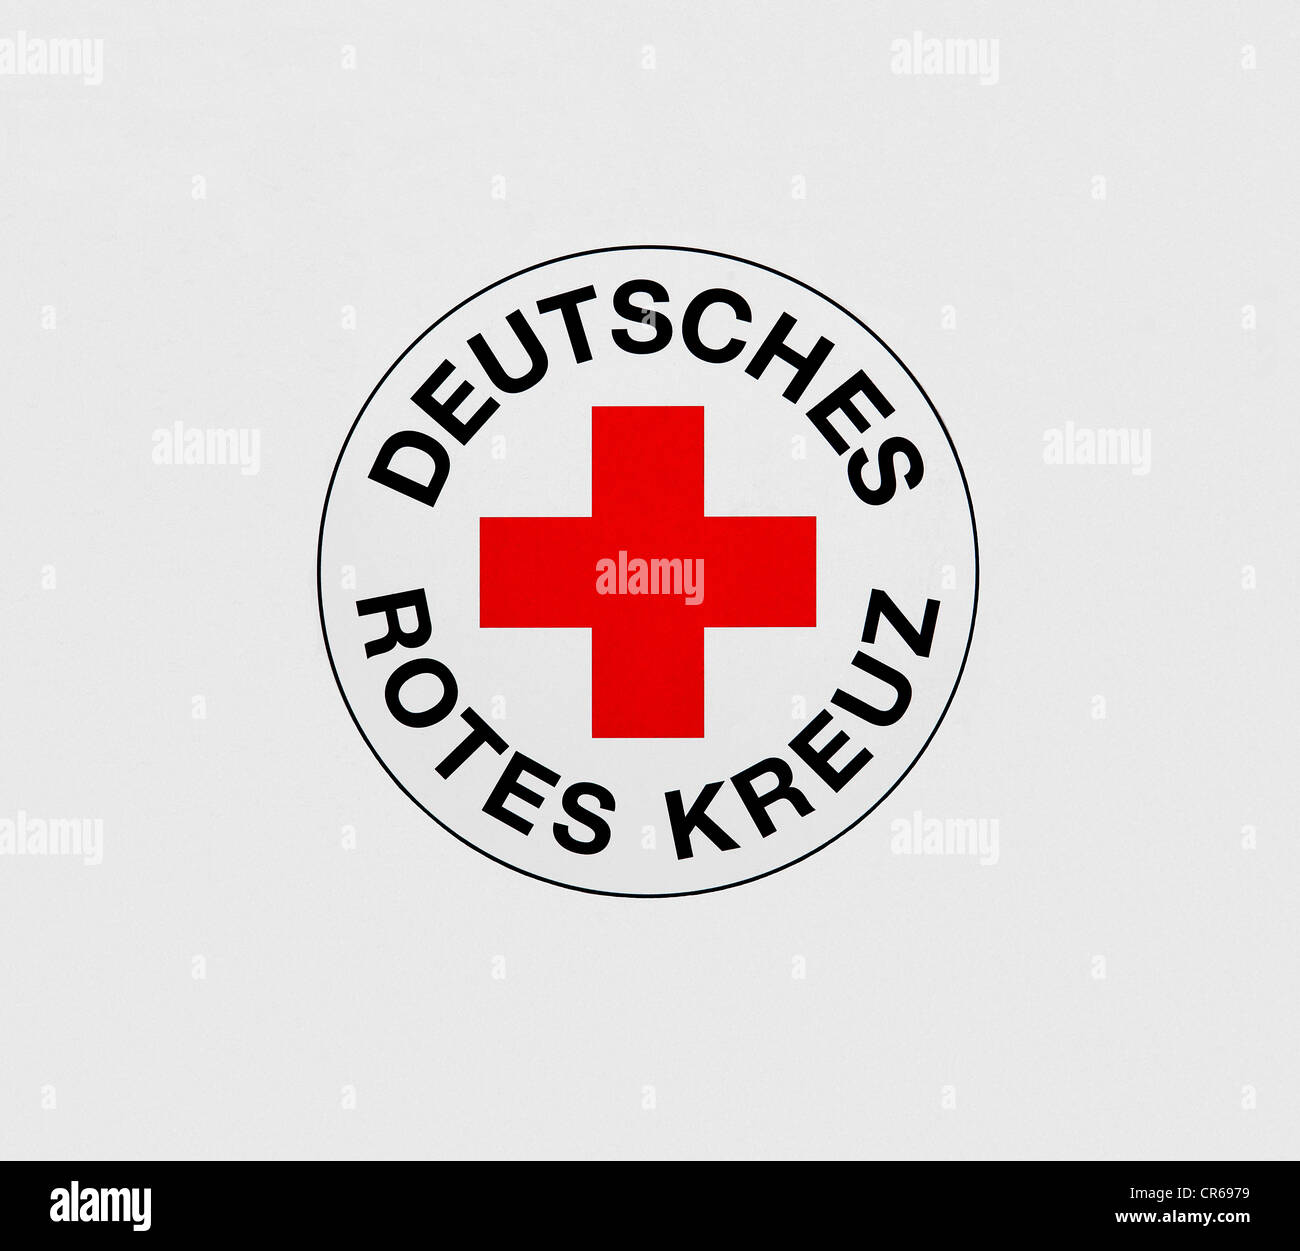 Logo of the Deutsches Rotes Kreuz or German Red Cross - Stock Image